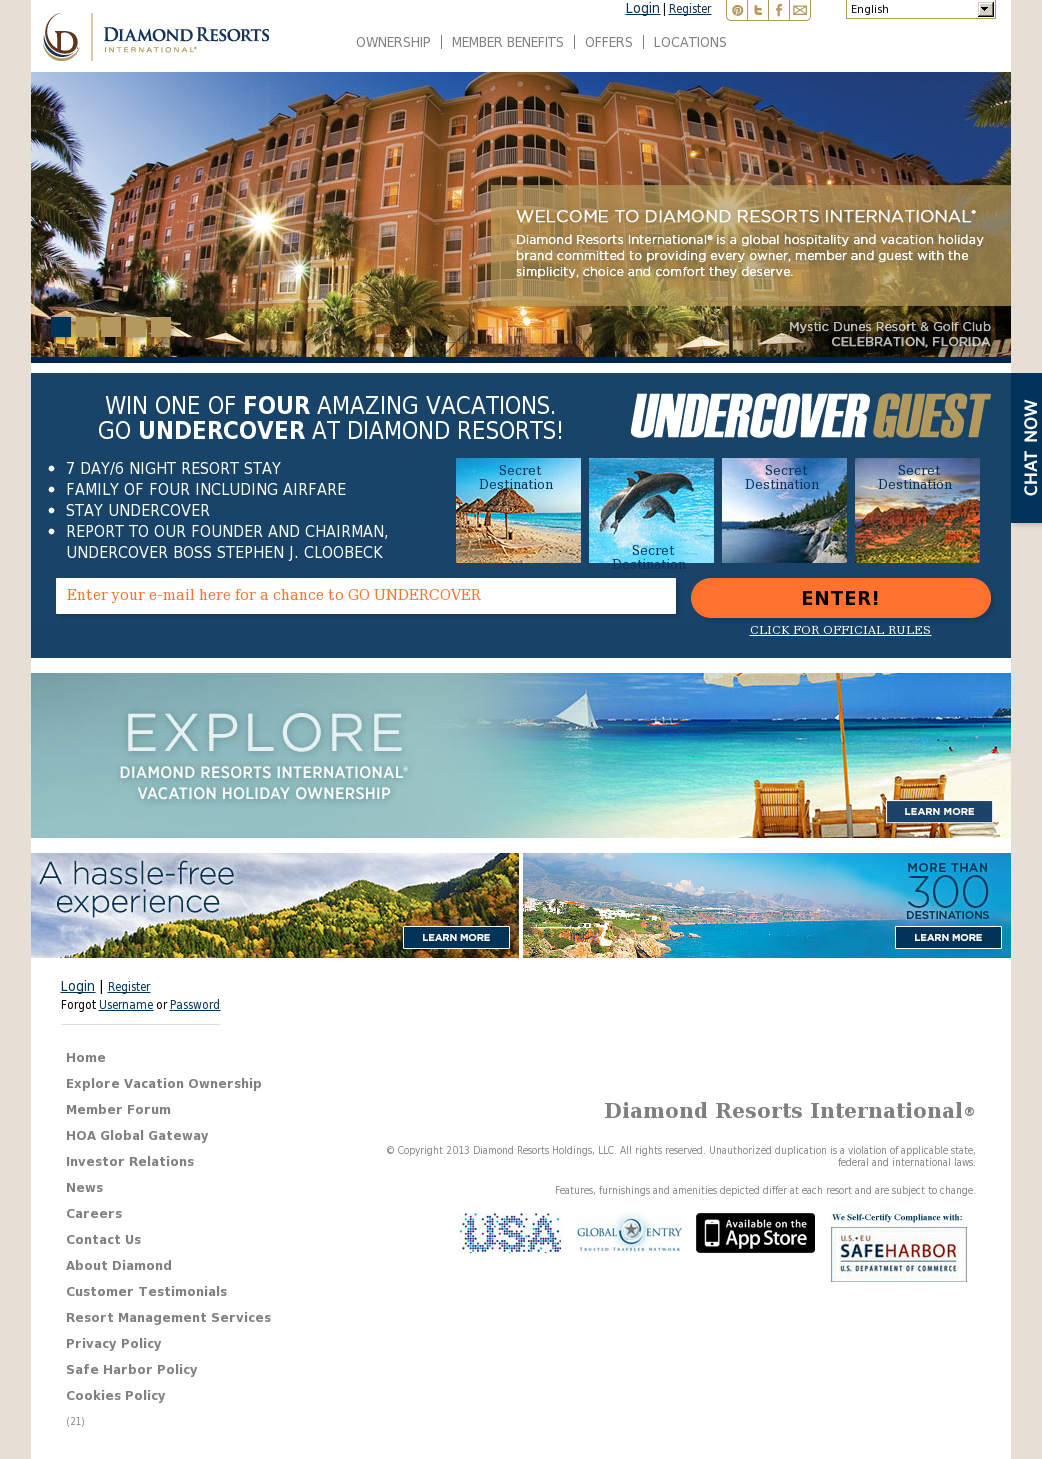 Diamond Resorts Competitors, Revenue and Employees - Owler